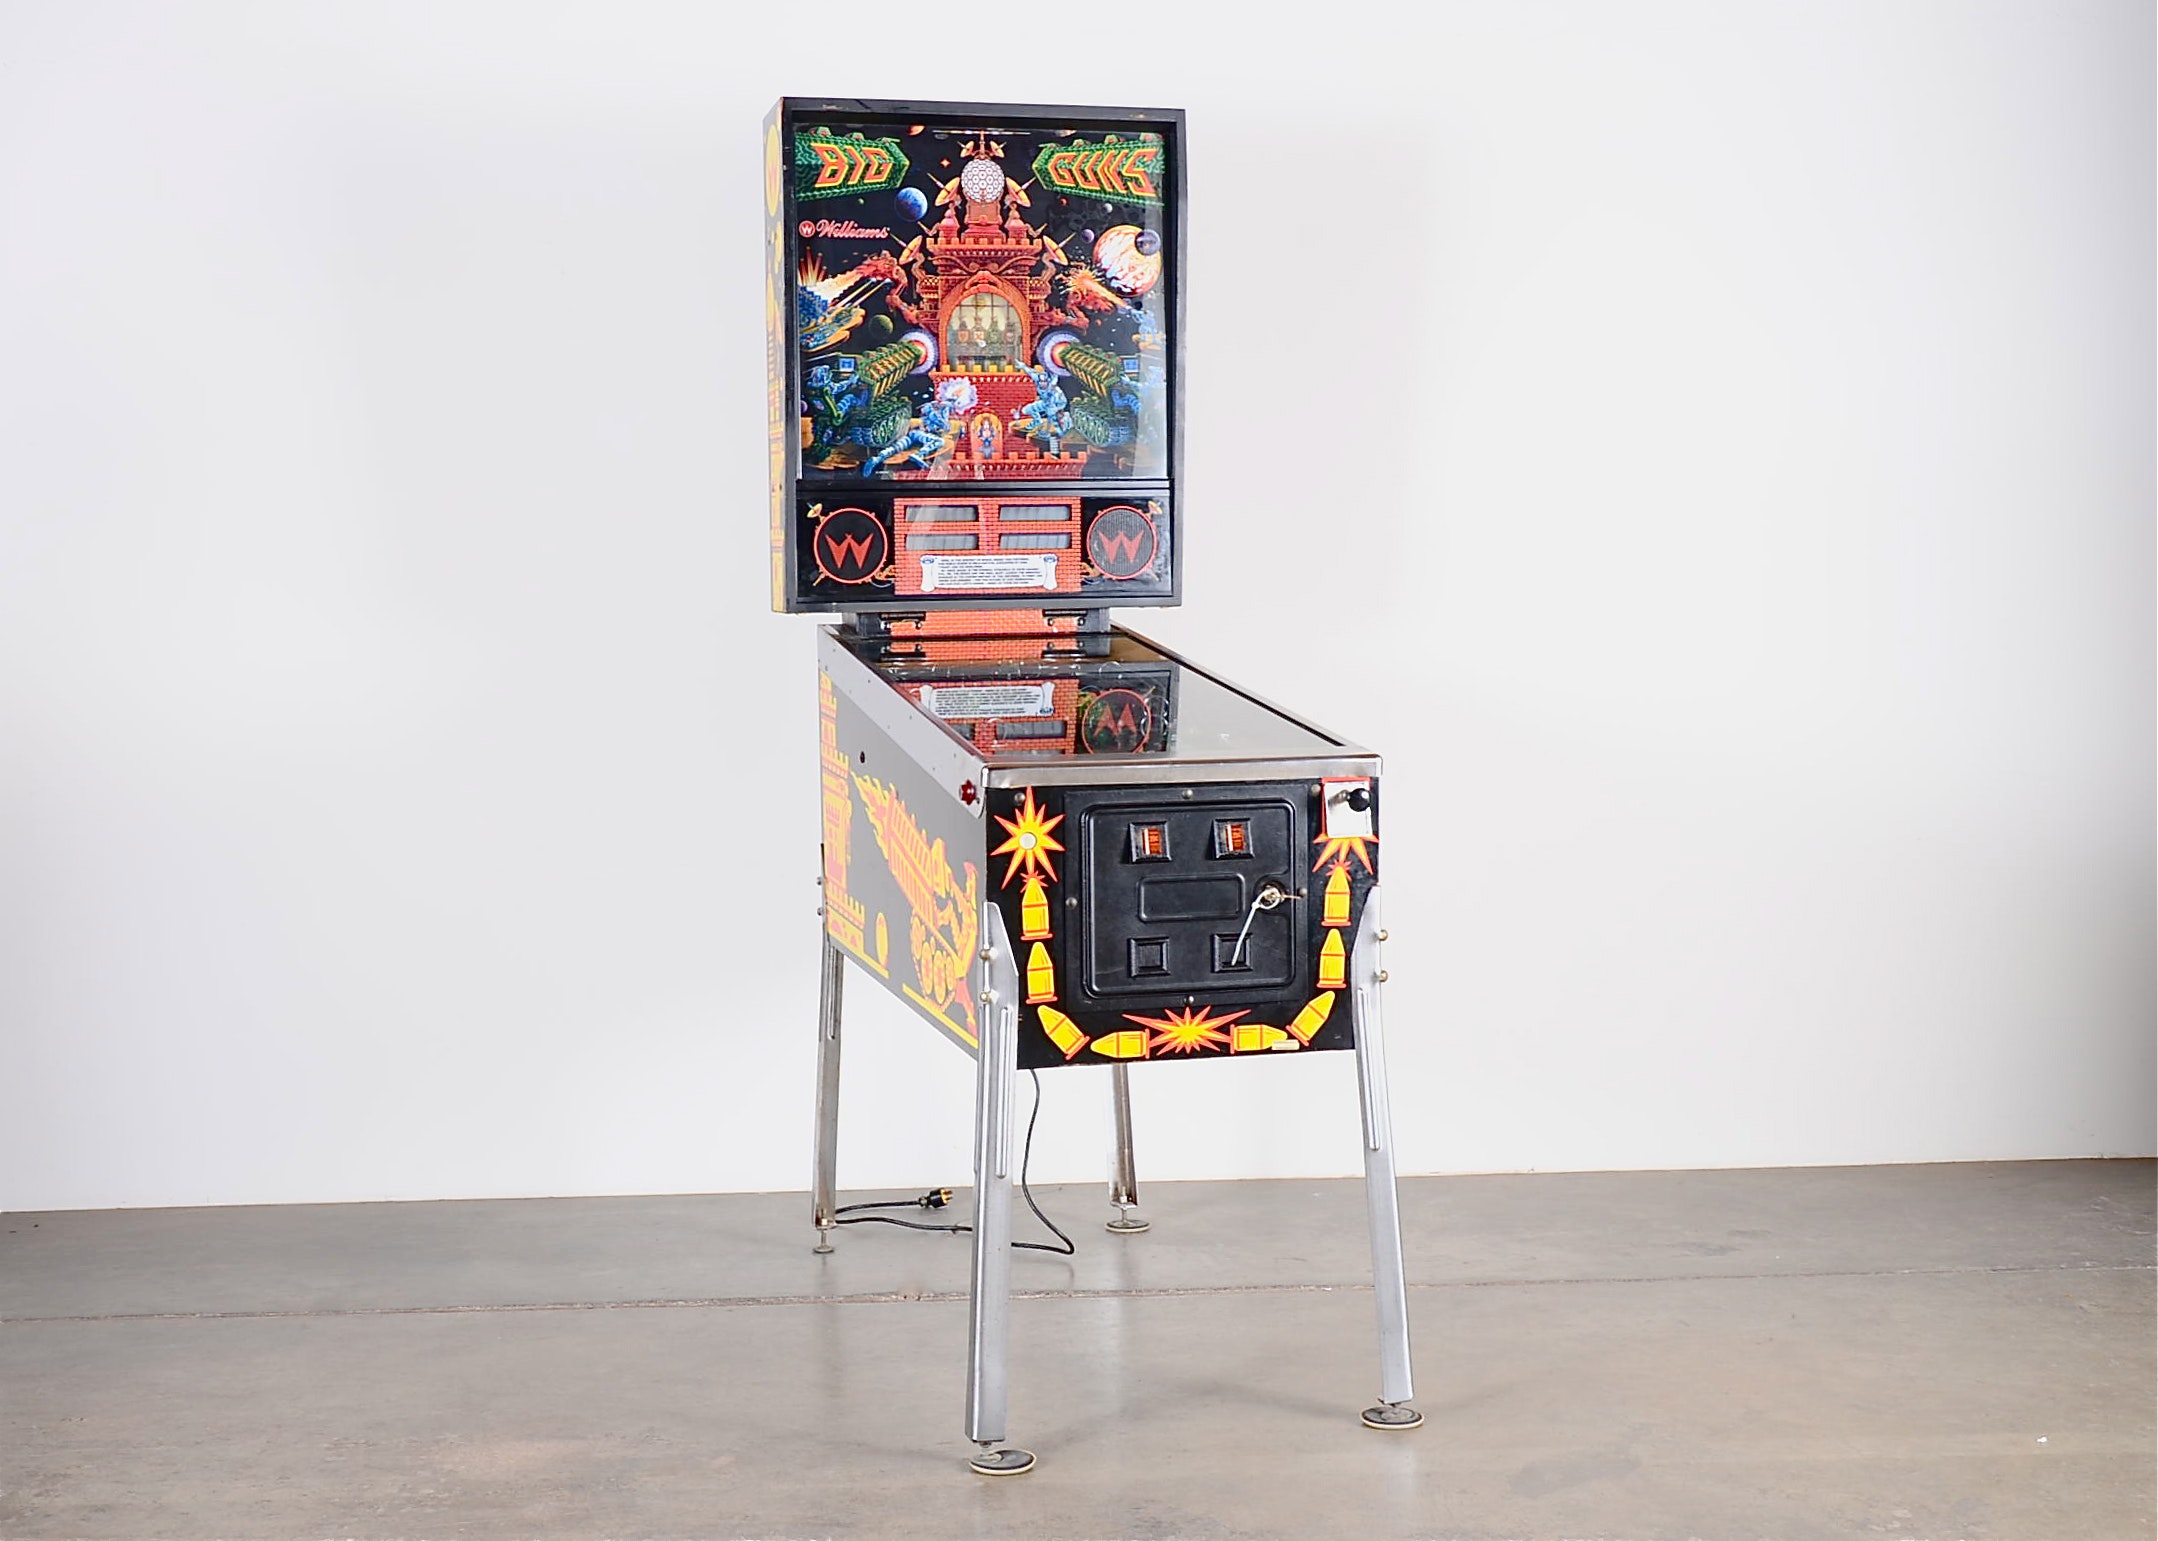 Big Guns Pinball Game by Williams